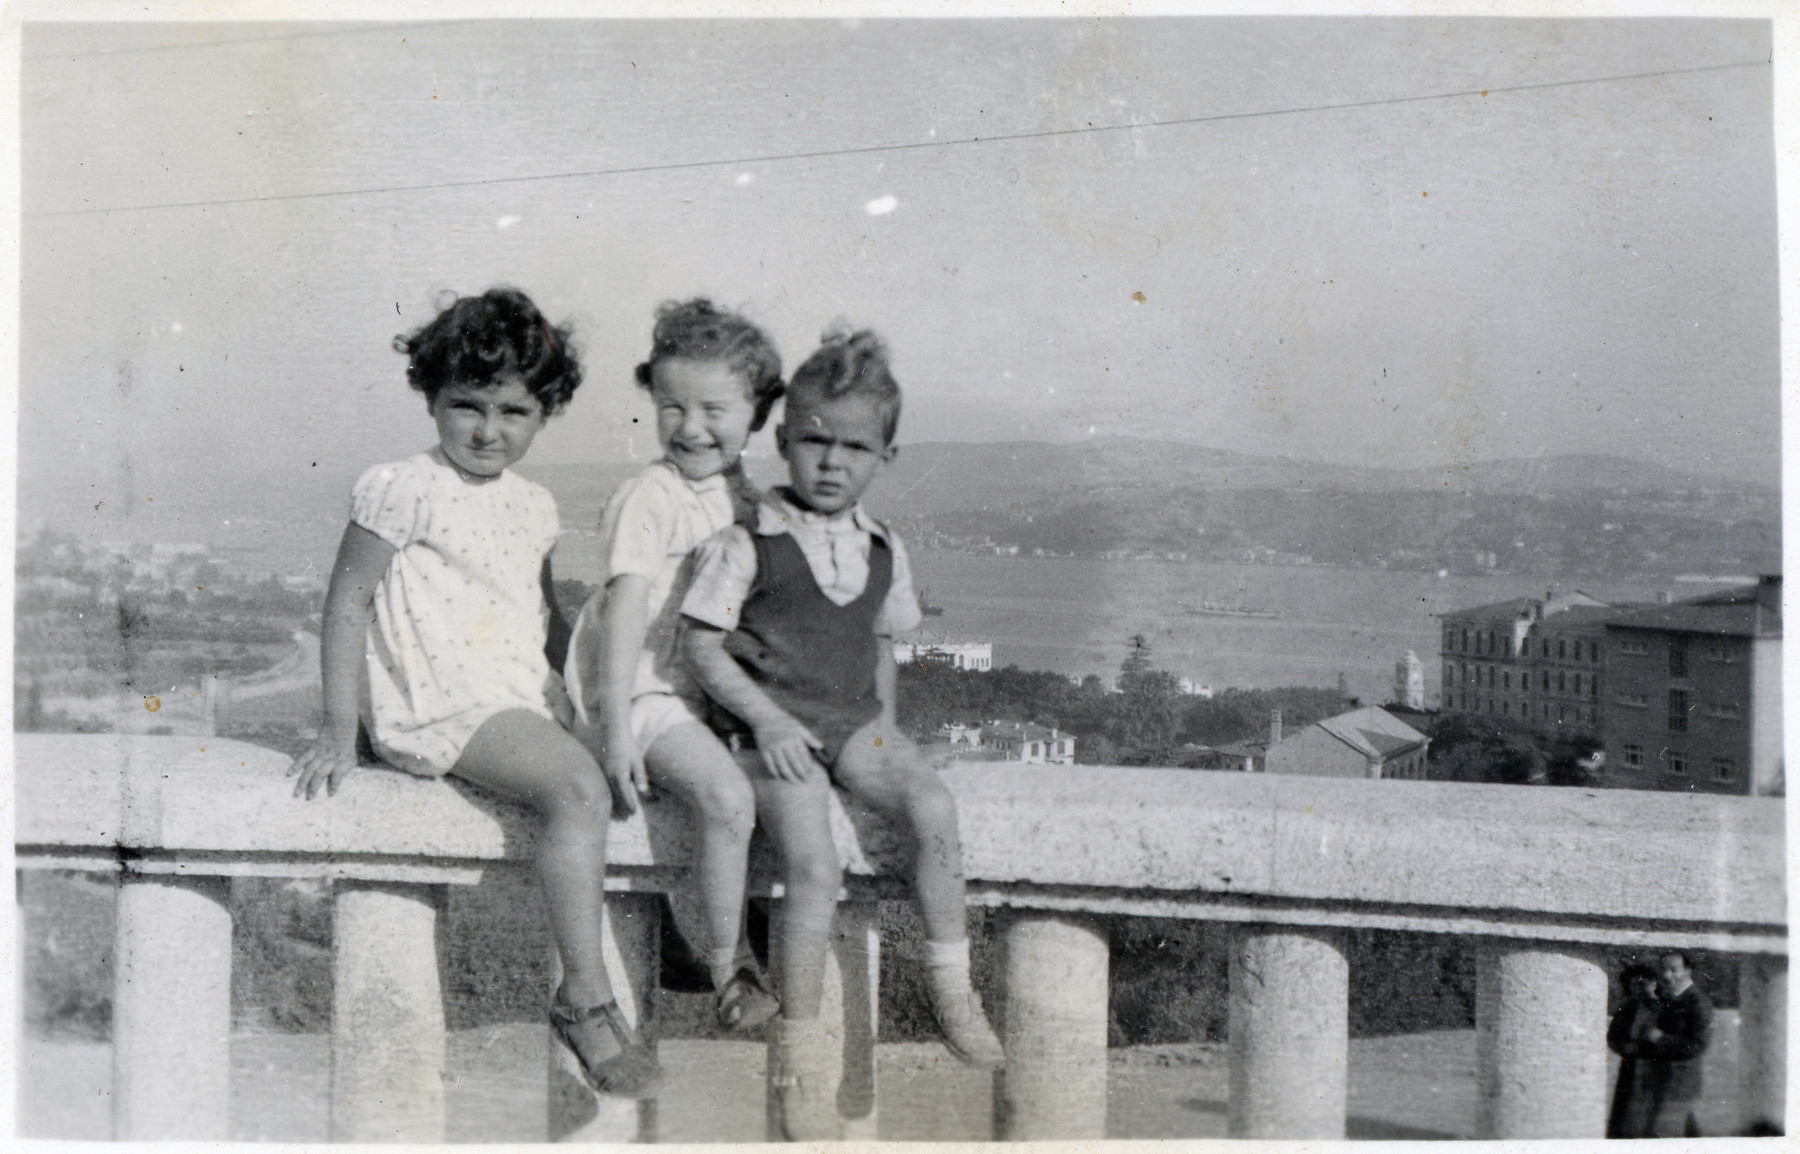 Joasia Klein poses on a bridge in Istanbul, Turkey with two other young children.